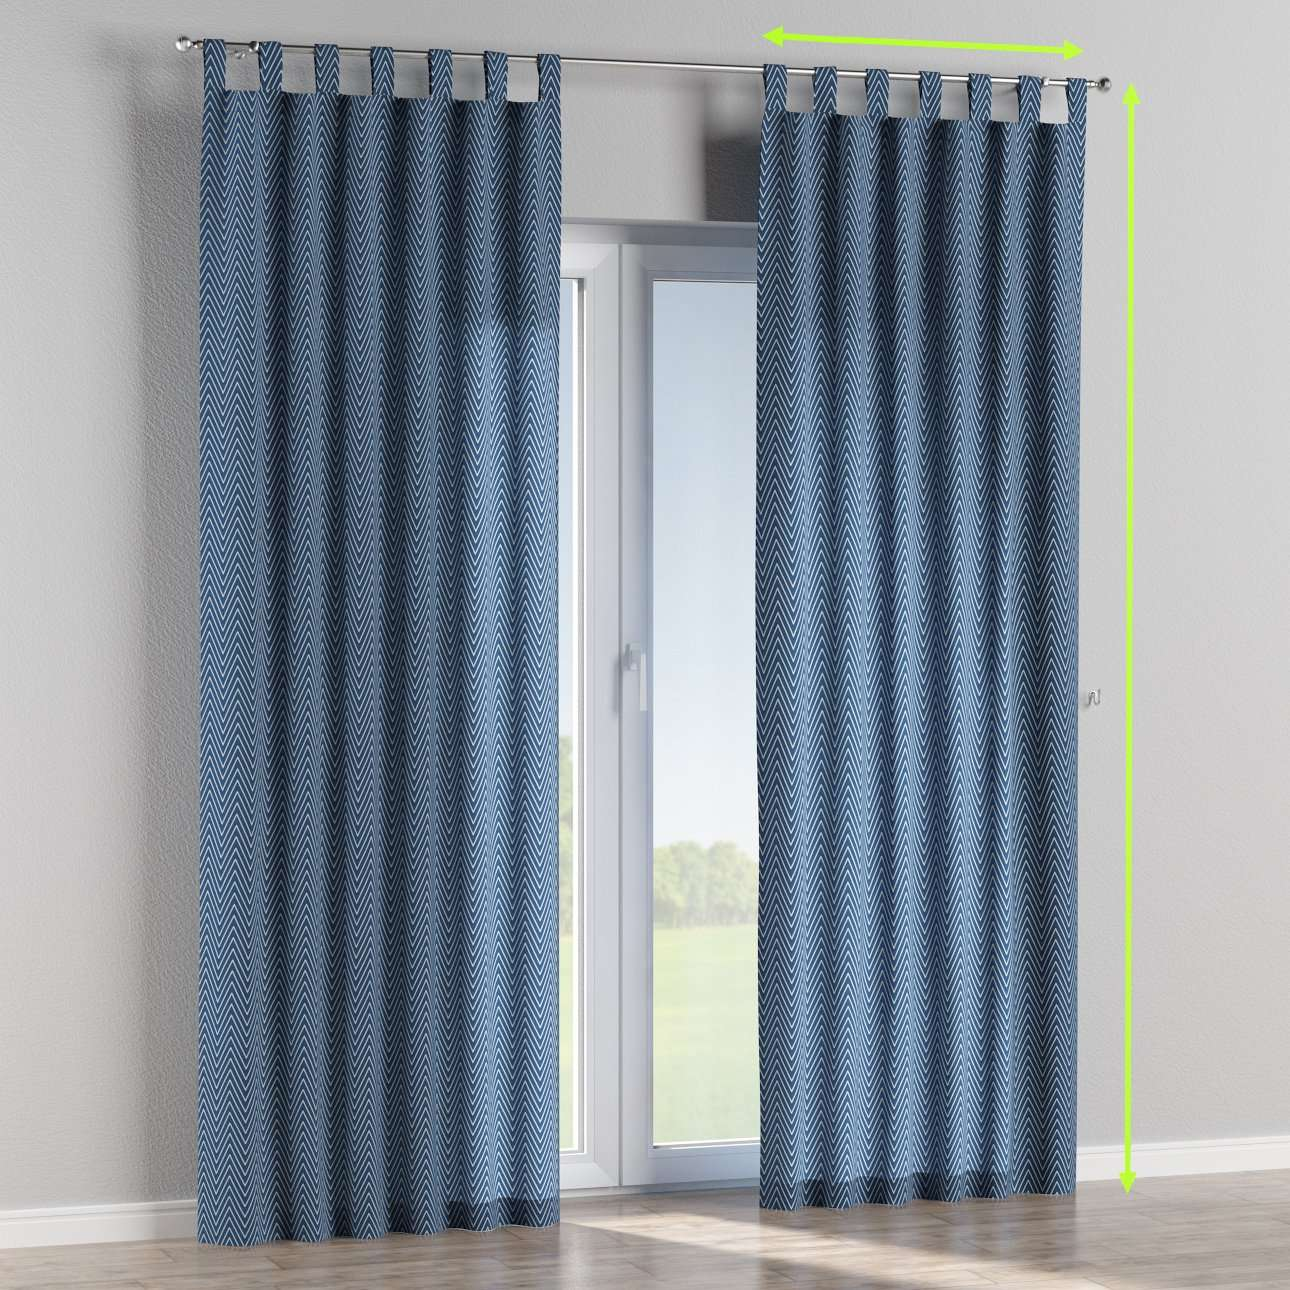 Tab top lined curtains in collection Brooklyn, fabric: 137-88